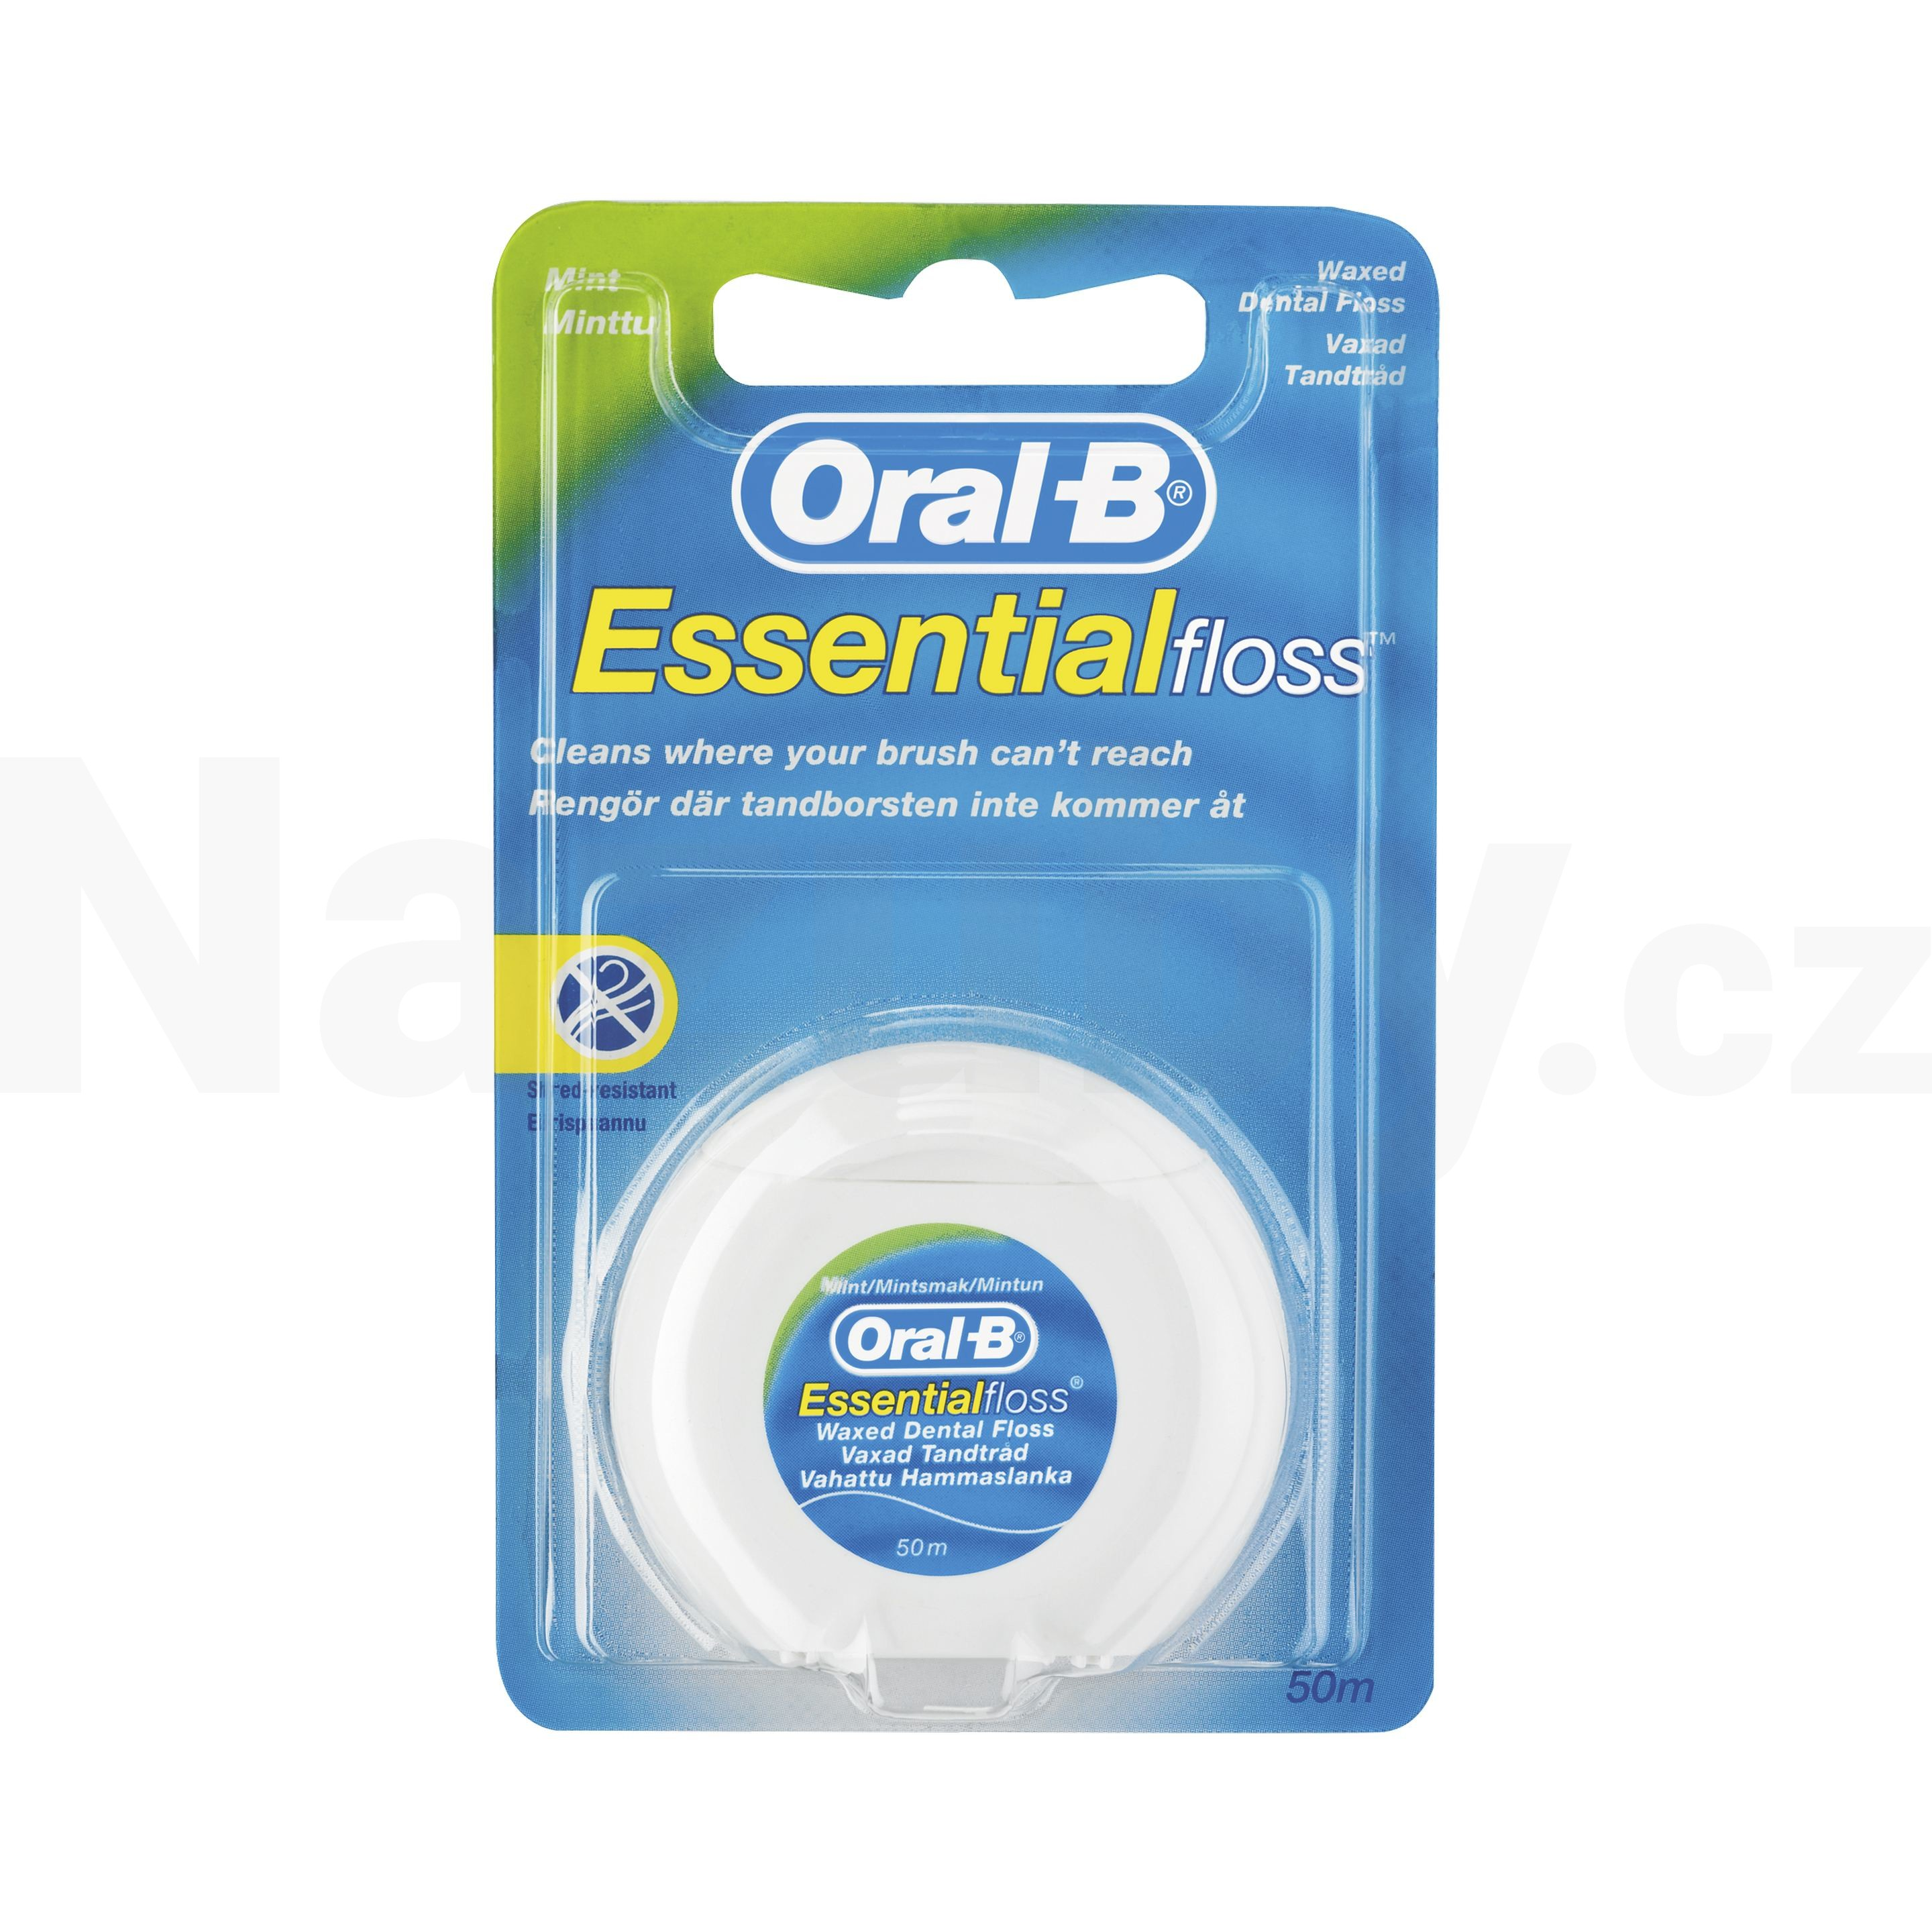 Oral-B Essential Floss zubní nit 50 m